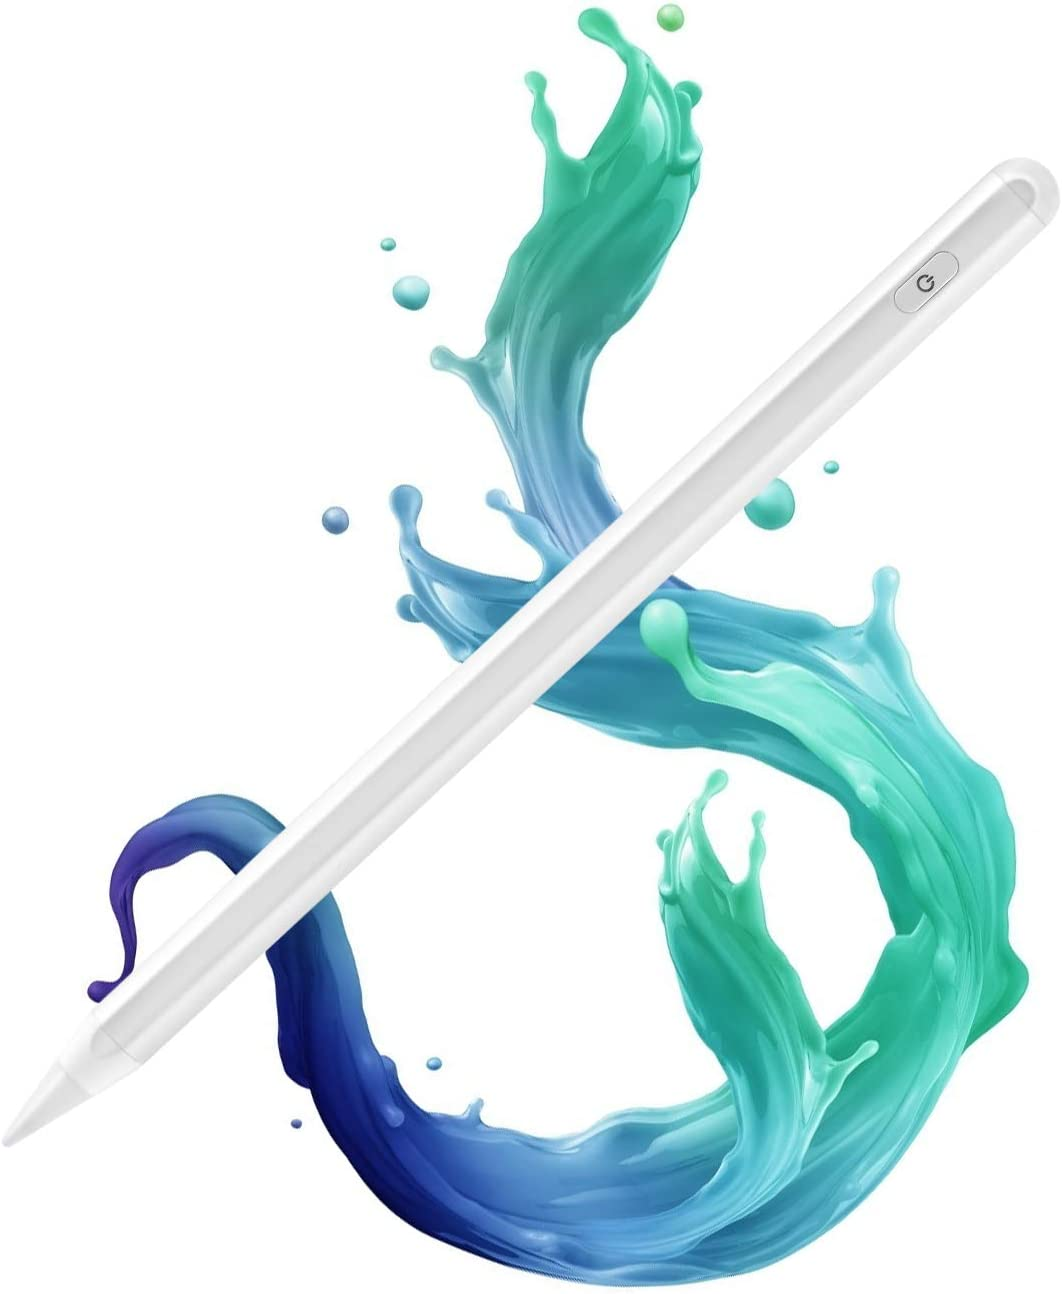 Stylus Pen for iPad Compatible with (2018-2020) Apple iPad 6th-8th Gen/iPad Pro 11''&12.9''/iPad Mini 5th Gen/iPad Air 3rd 4th Gen, Touch Pencil with Palm Rejection for Precise Writing & Drawing